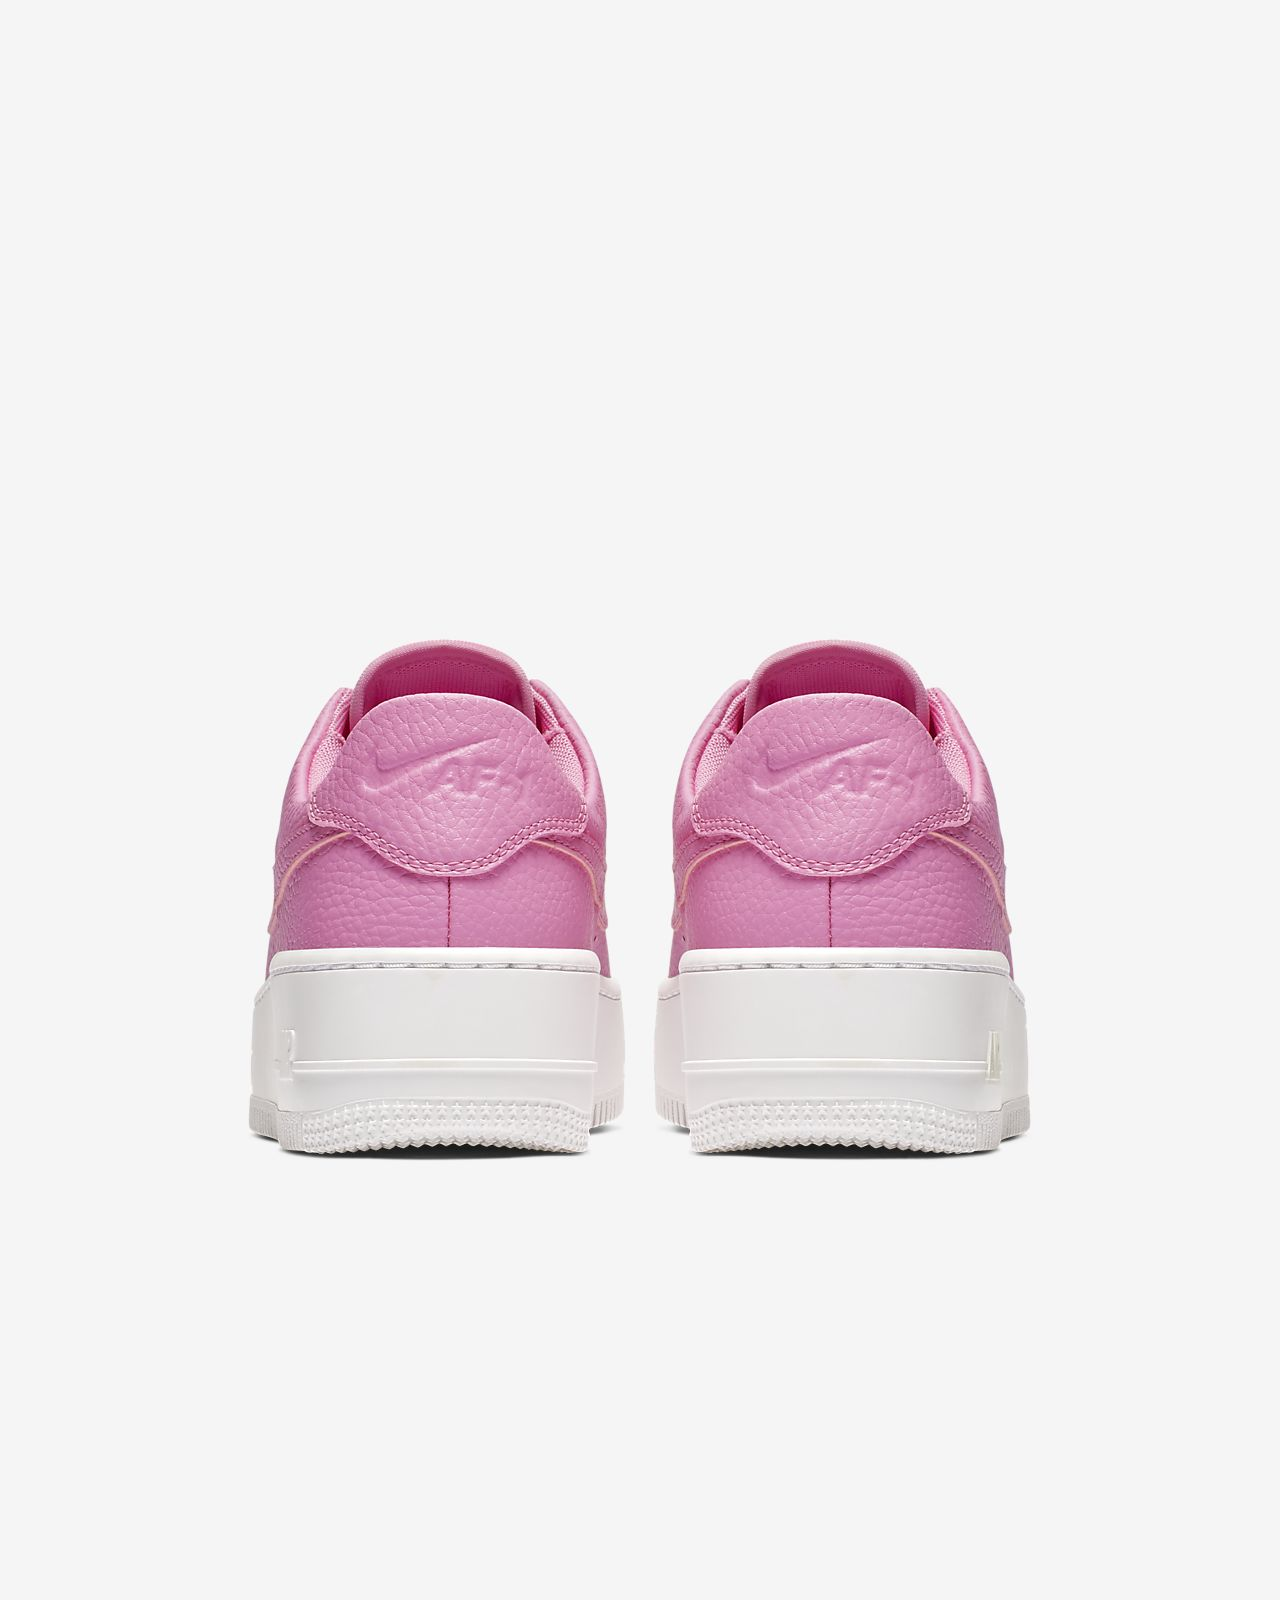 01f83837283 Nike Air Force 1 Sage Low Women s Shoe. Nike.com GB